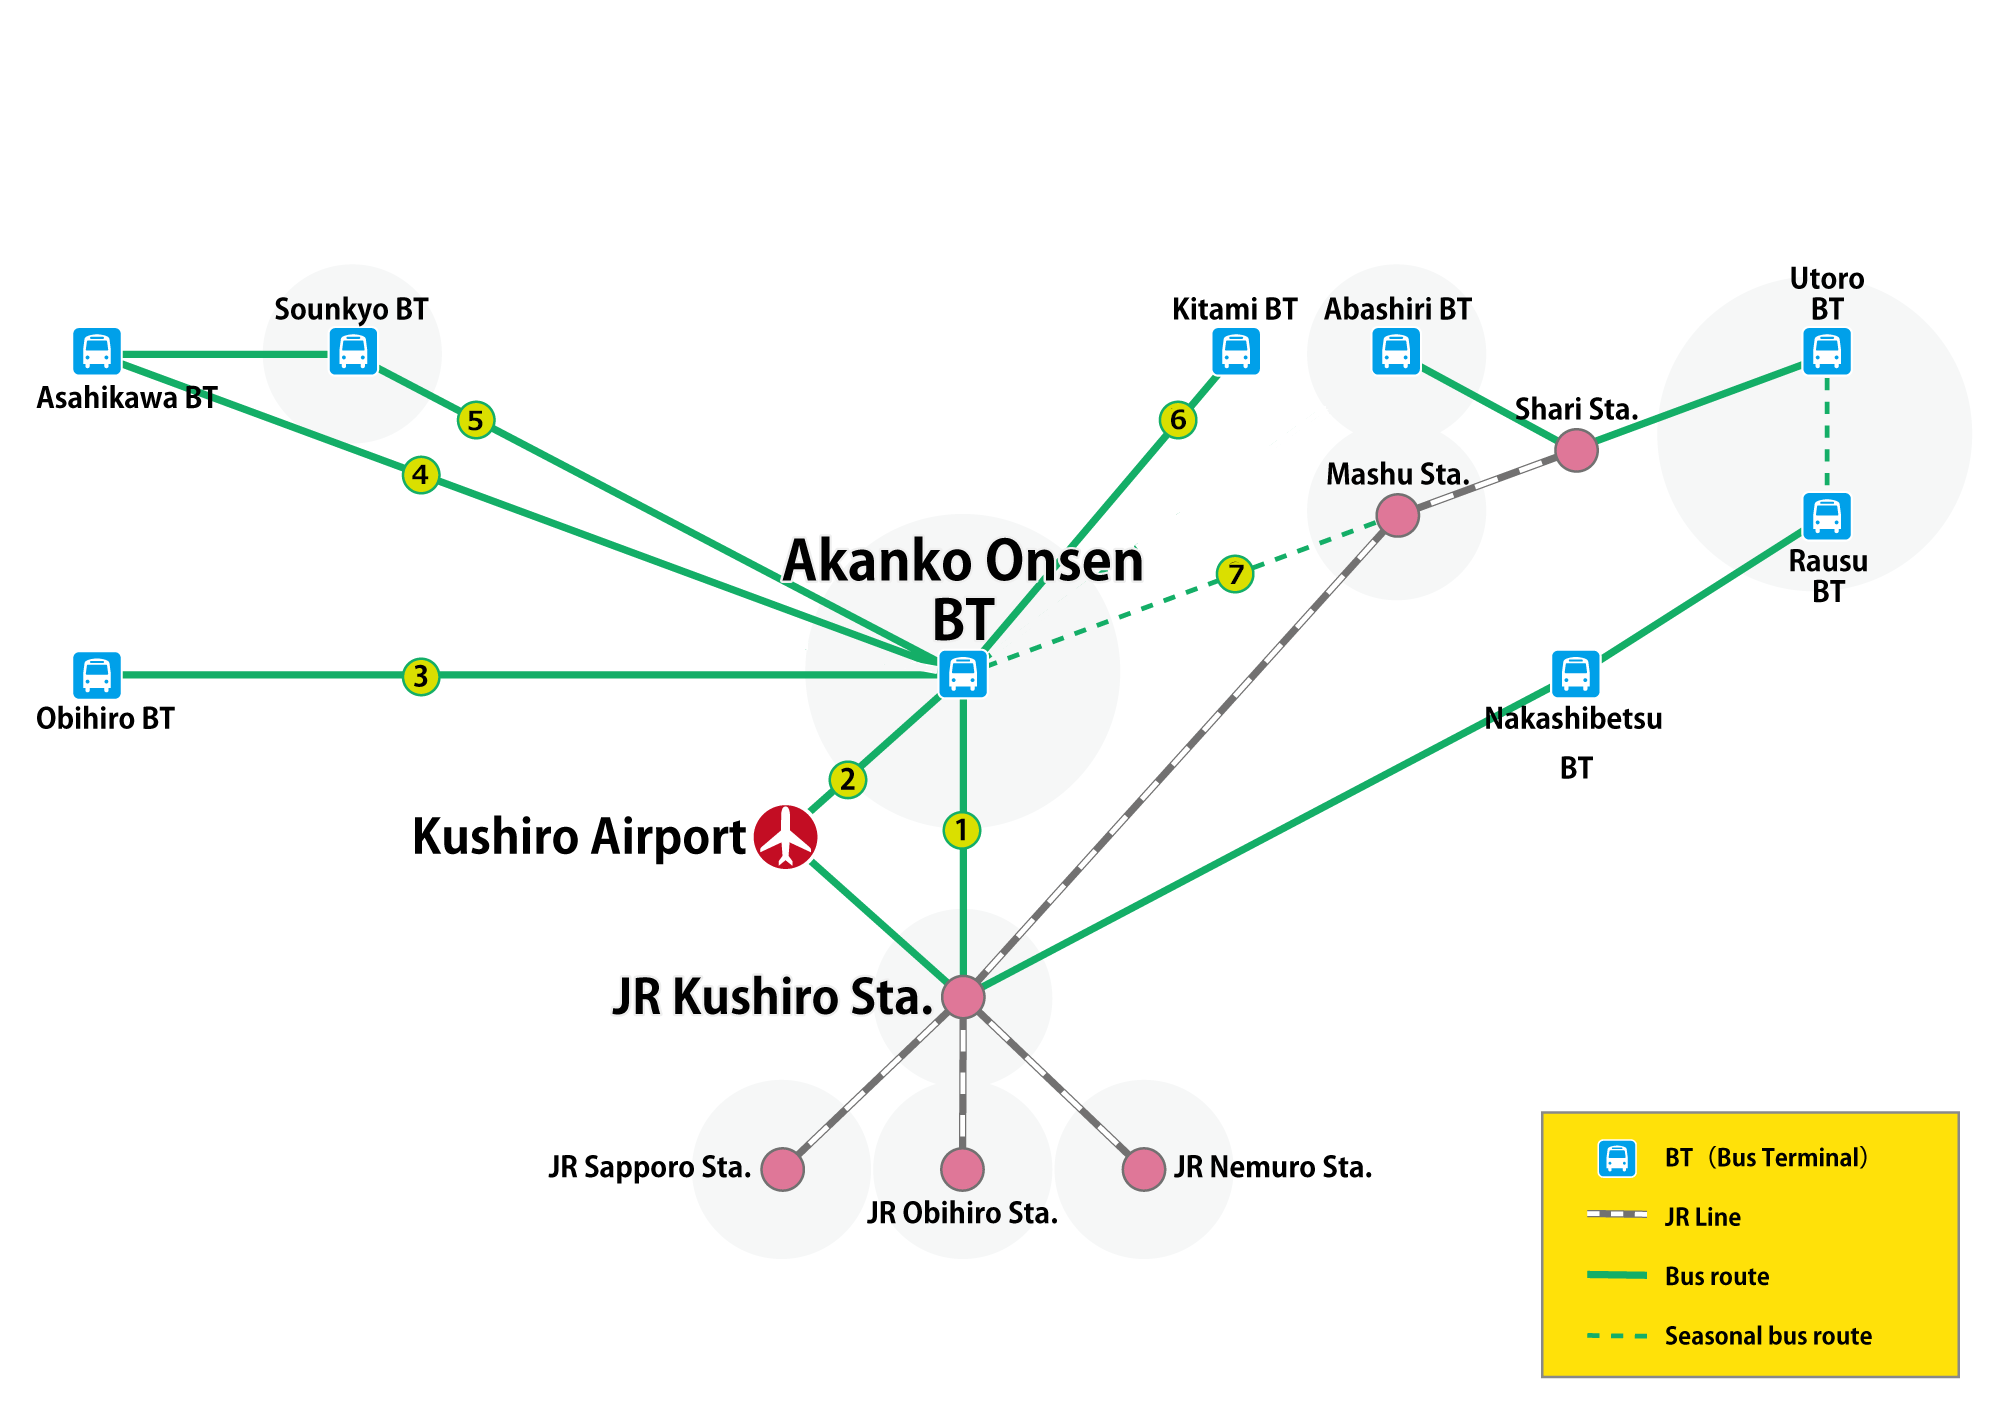 Akankoonsen BT (bus terminal) departure and arrival line